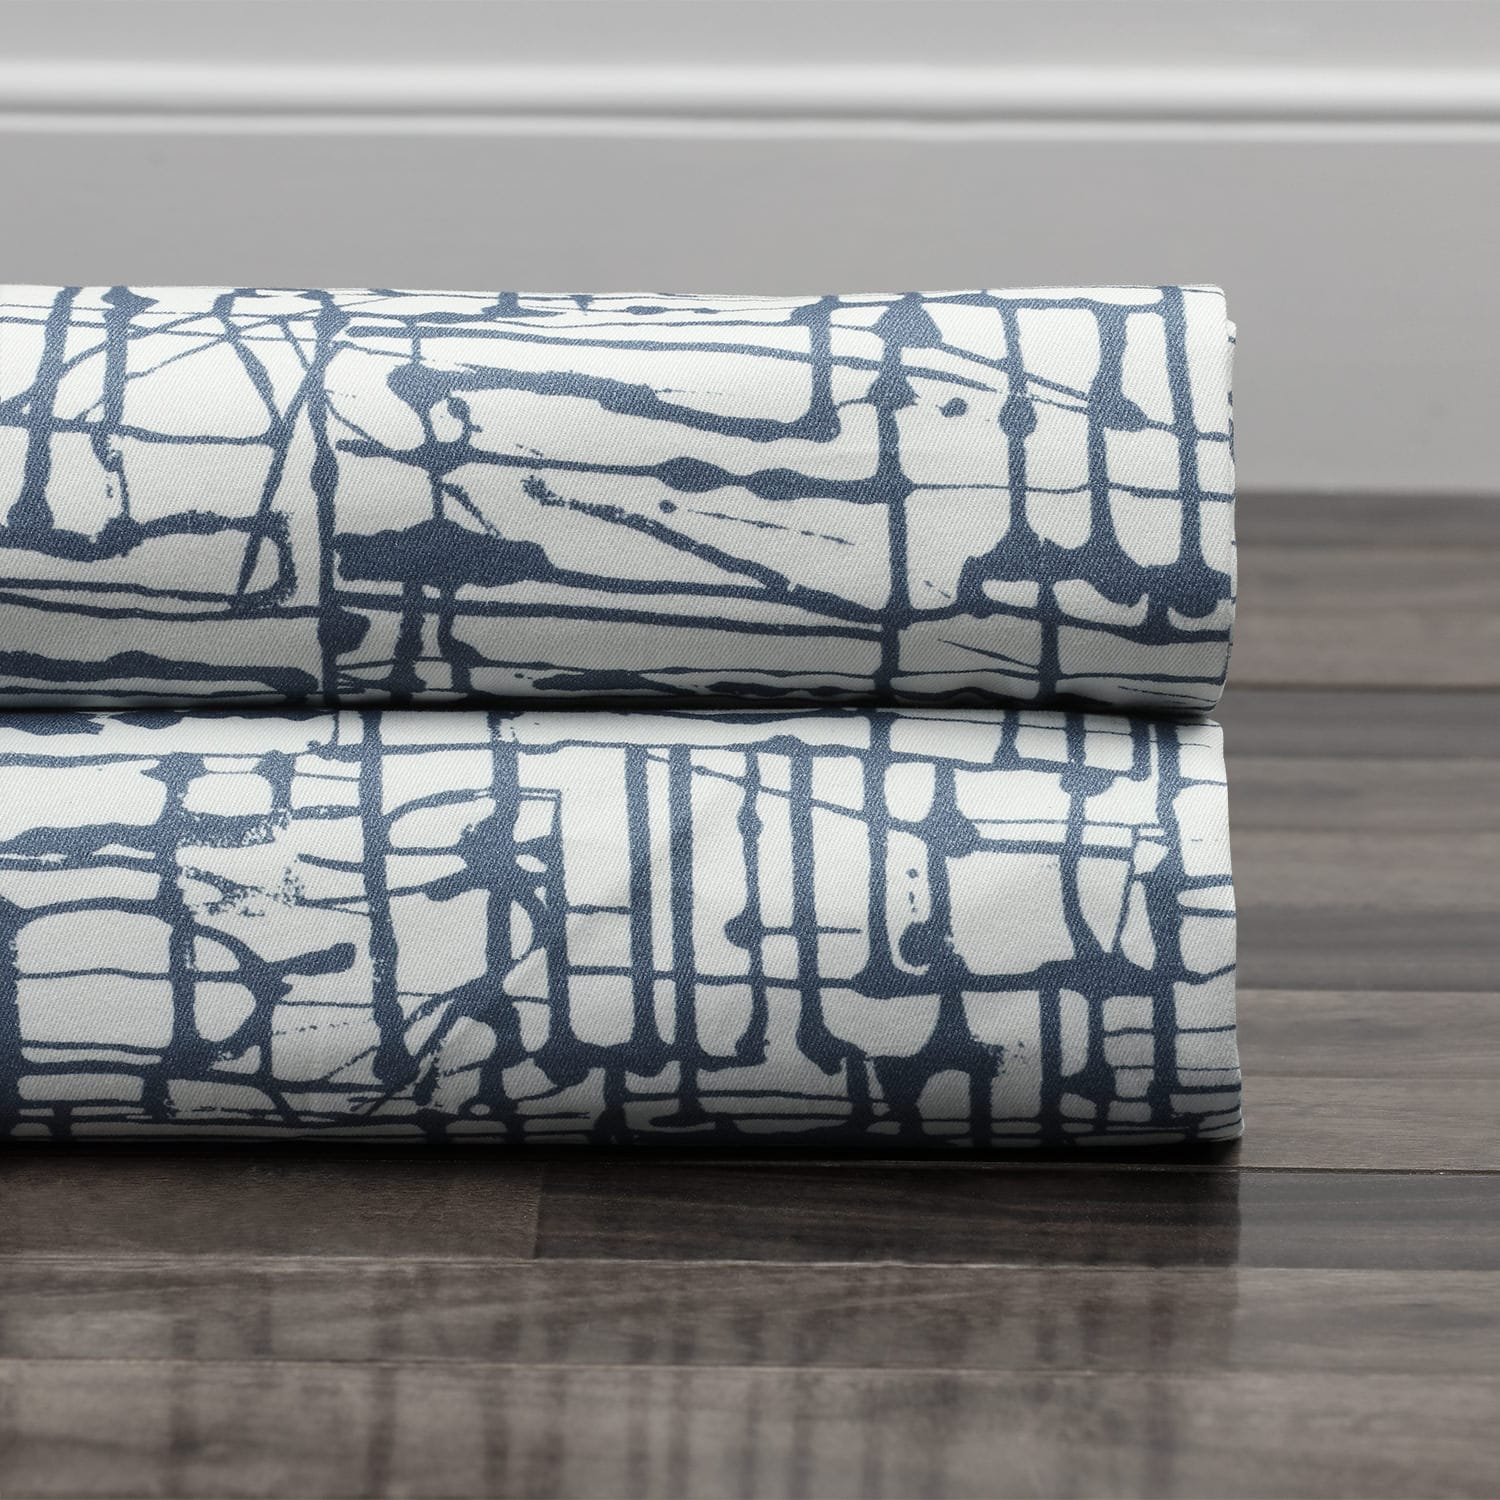 Le Mans Blue Digital Printed Cotton Twill Swatch